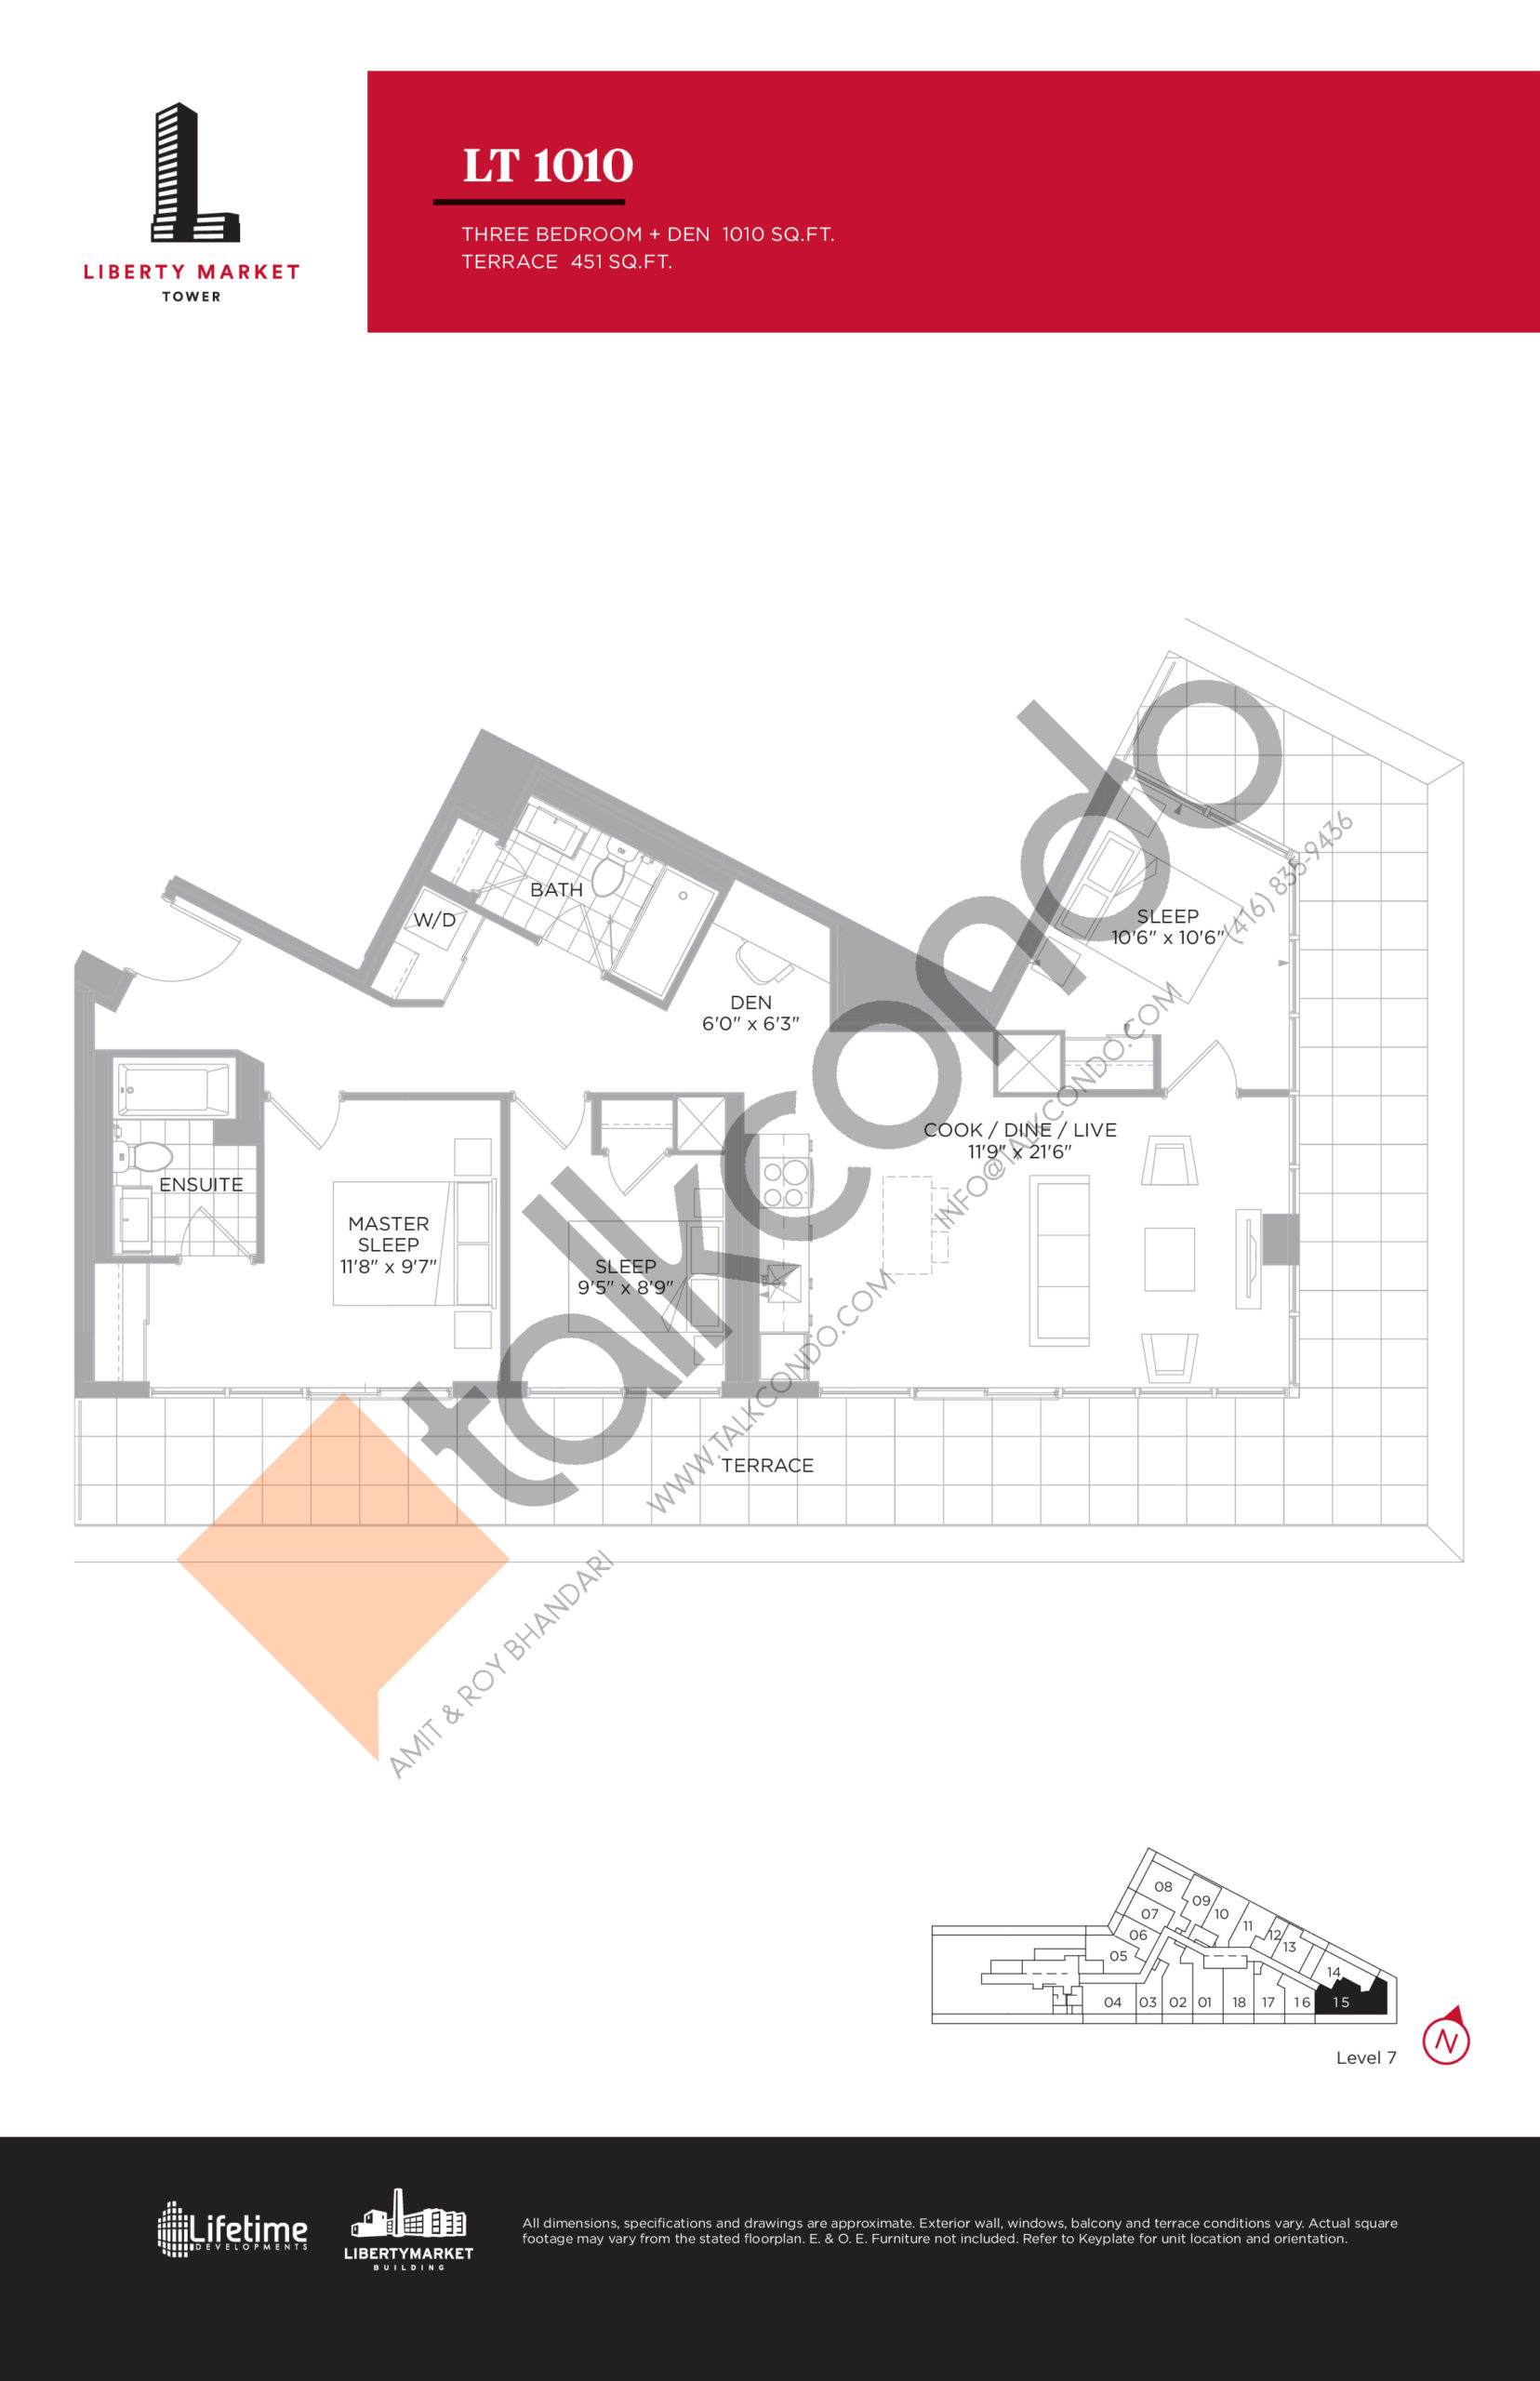 LT 1010 - Terrace Collection Floor Plan at Liberty Market Tower Condos - 1010 sq.ft